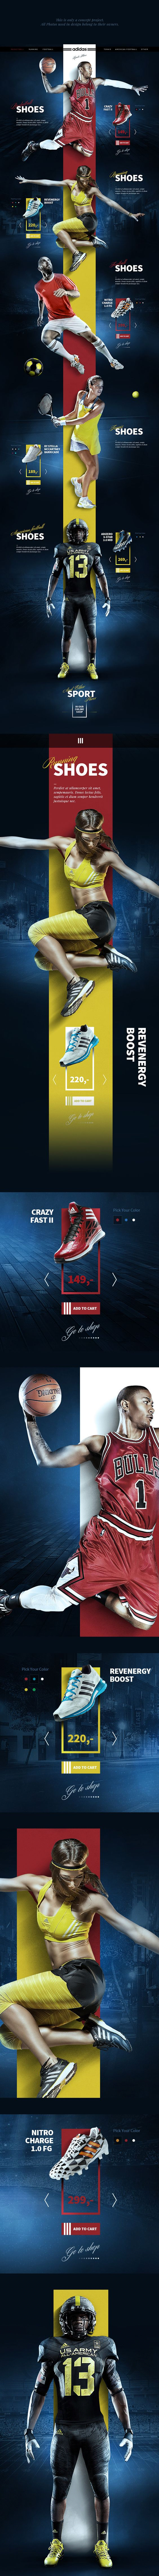 Here is a good example of detailed web design. Done by Pawel Skupien, Out of Krakow, Poland.